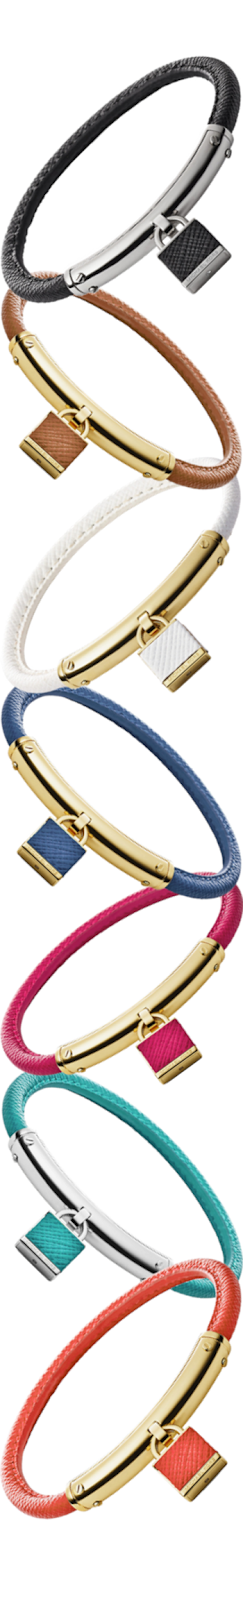 Michael Kors Leather Padlock Bracelet Assorted Colors